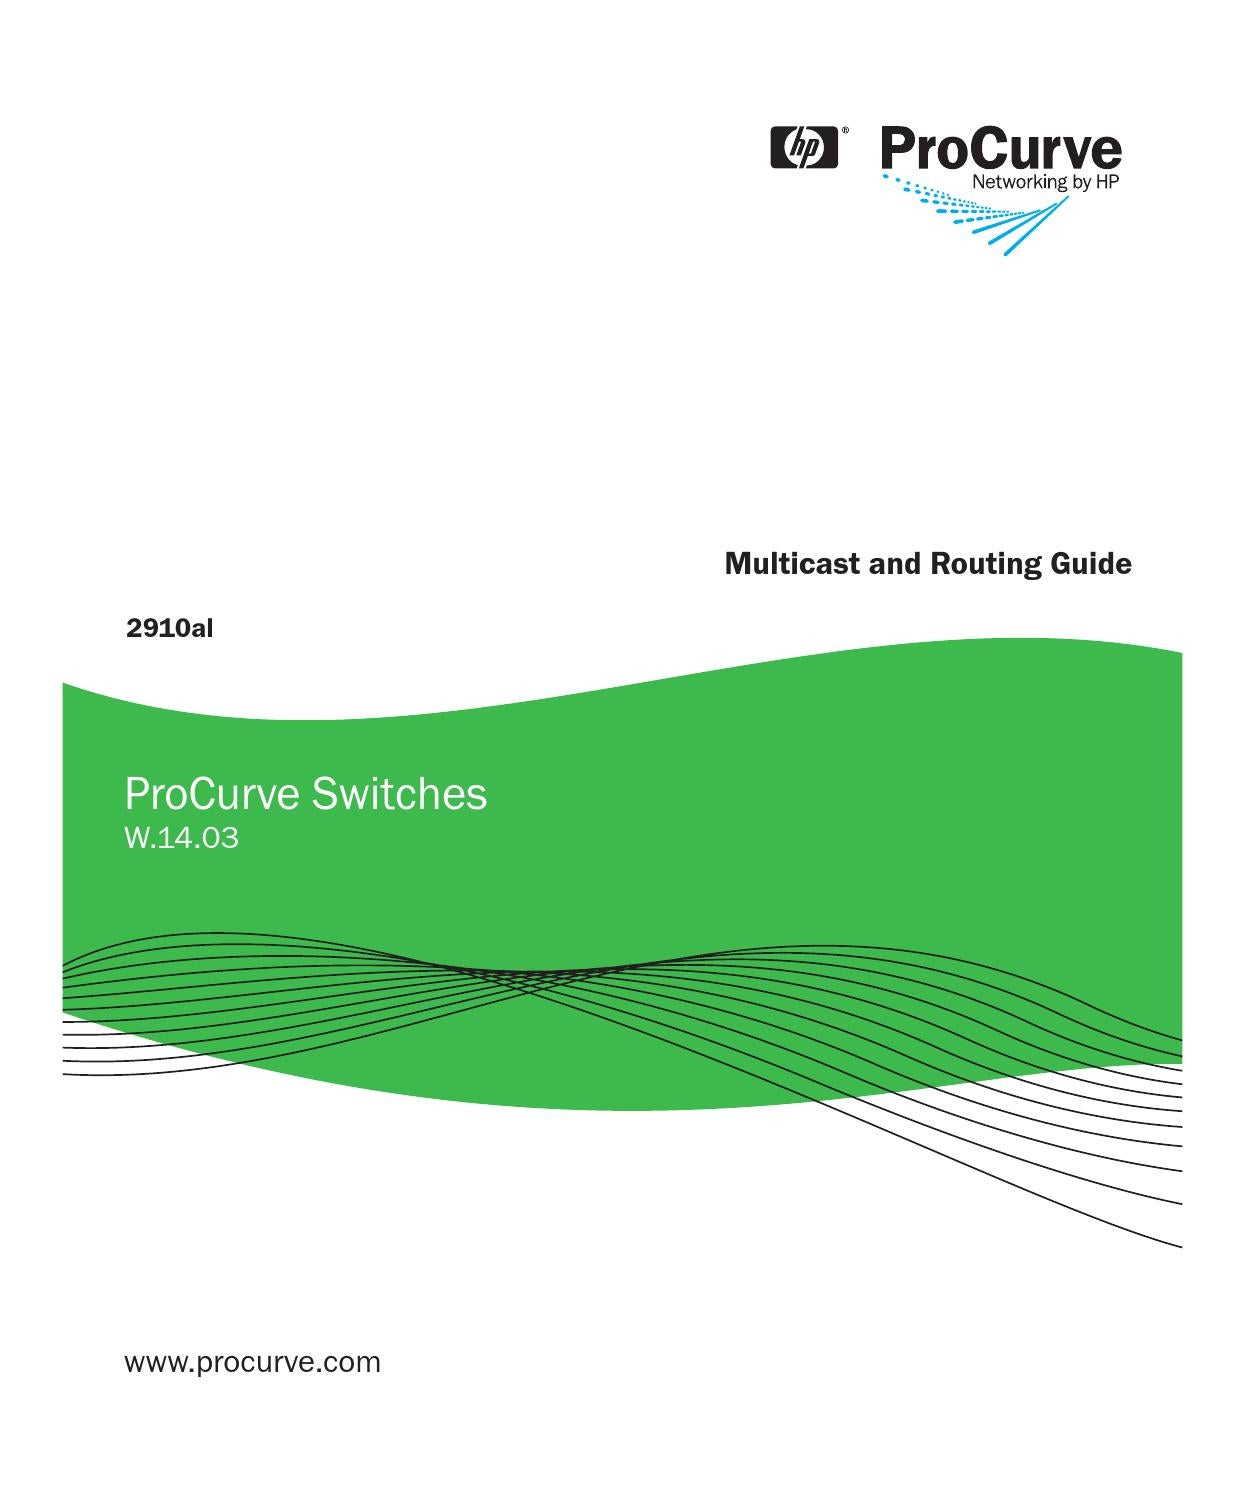 Multicast and routing guide by revistaadverbum - issuu